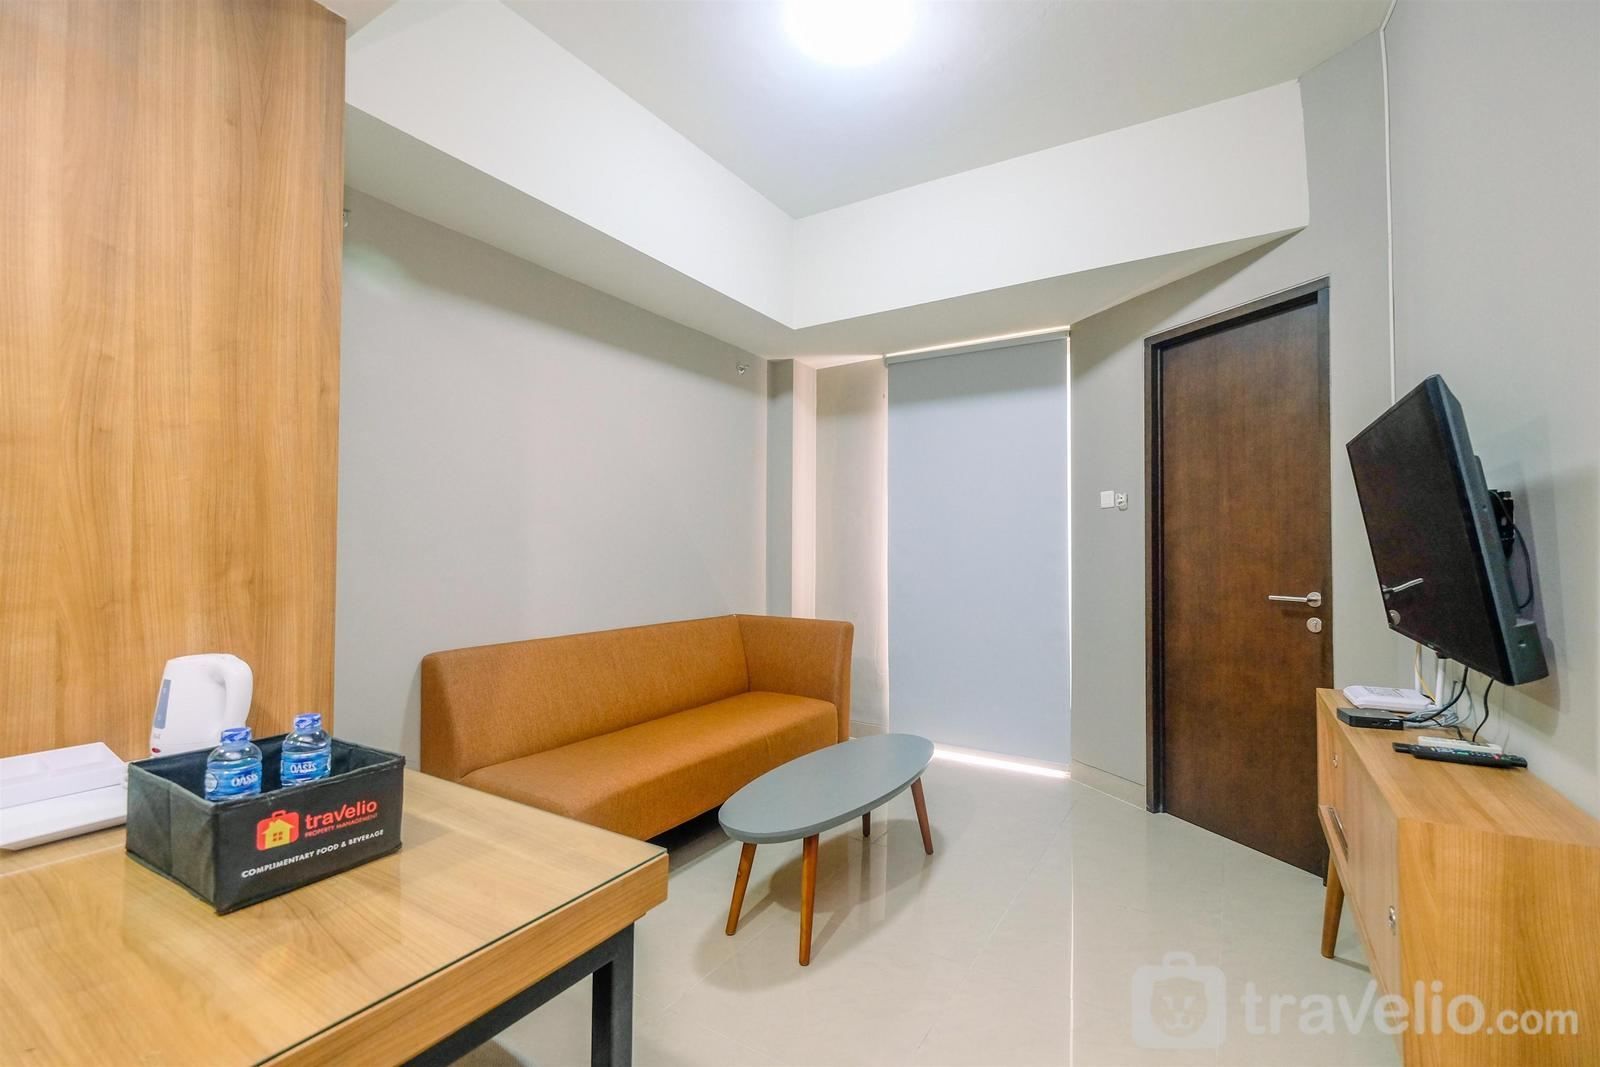 Apartemen Mustika Golf Residence - Chic and Cozy 1BR Apartment at Mustika Golf Residence By Travelio